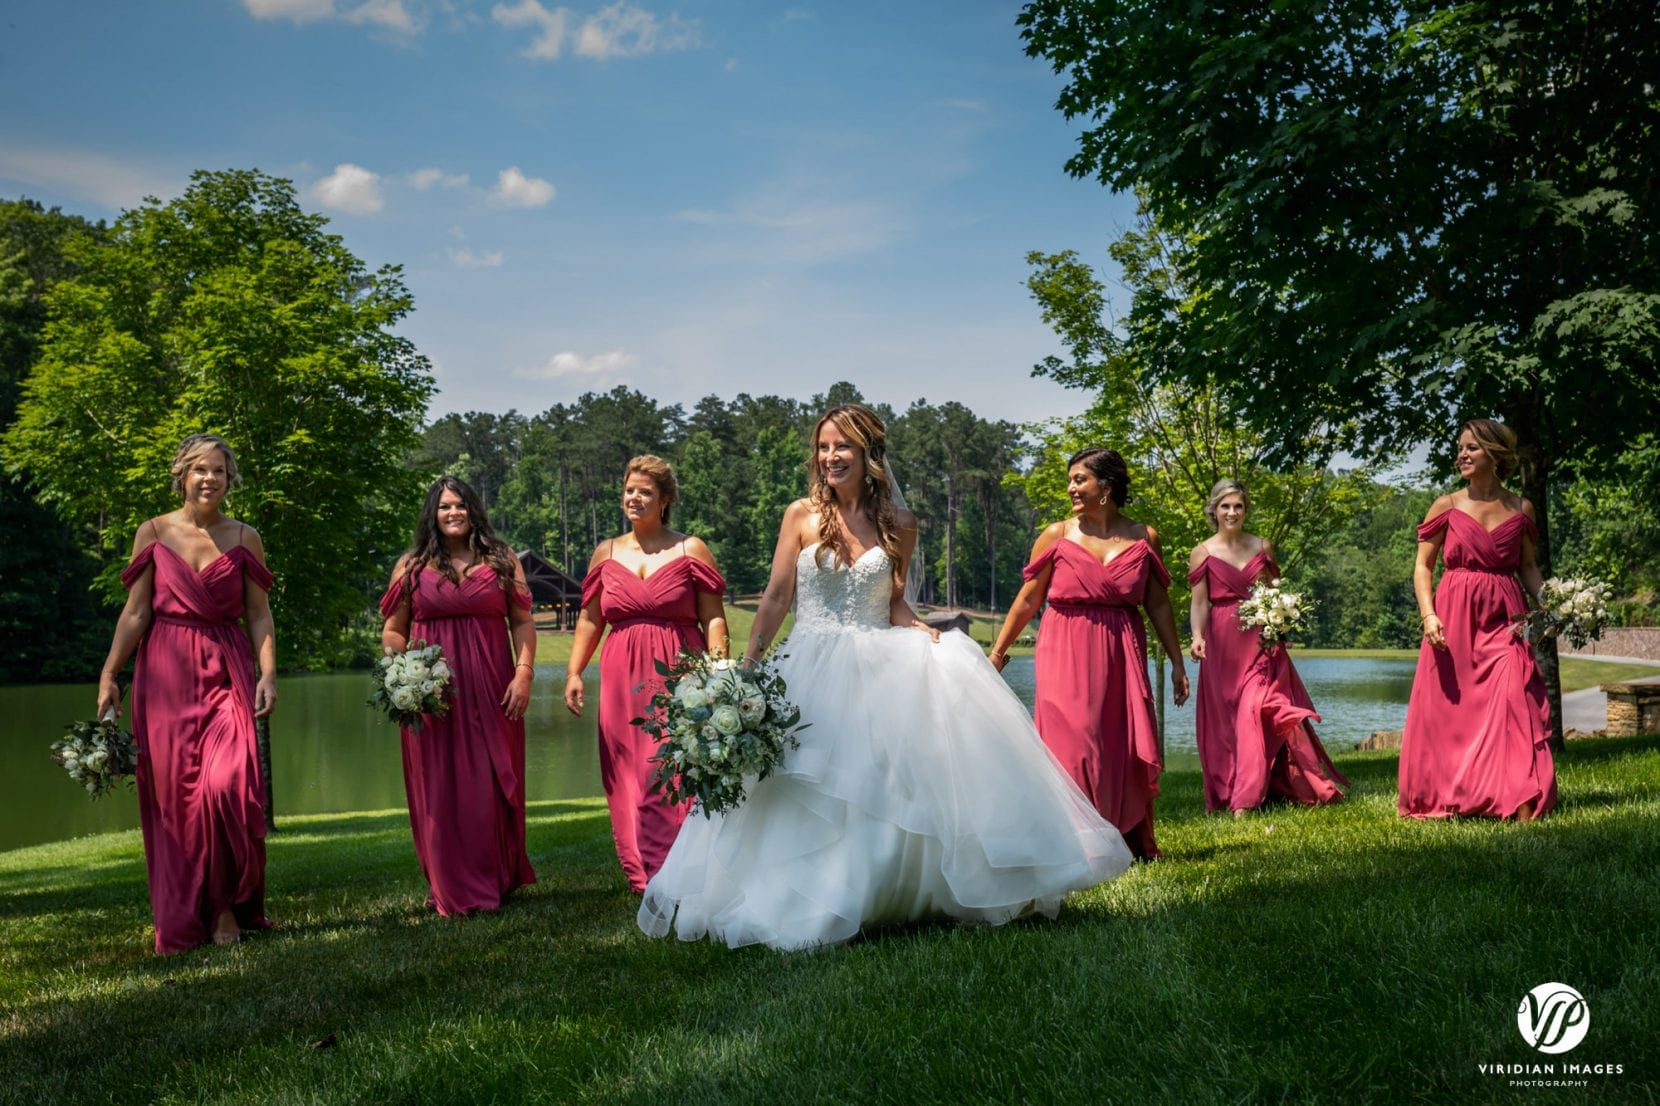 bride and bridesmaids walking on lawn near lake